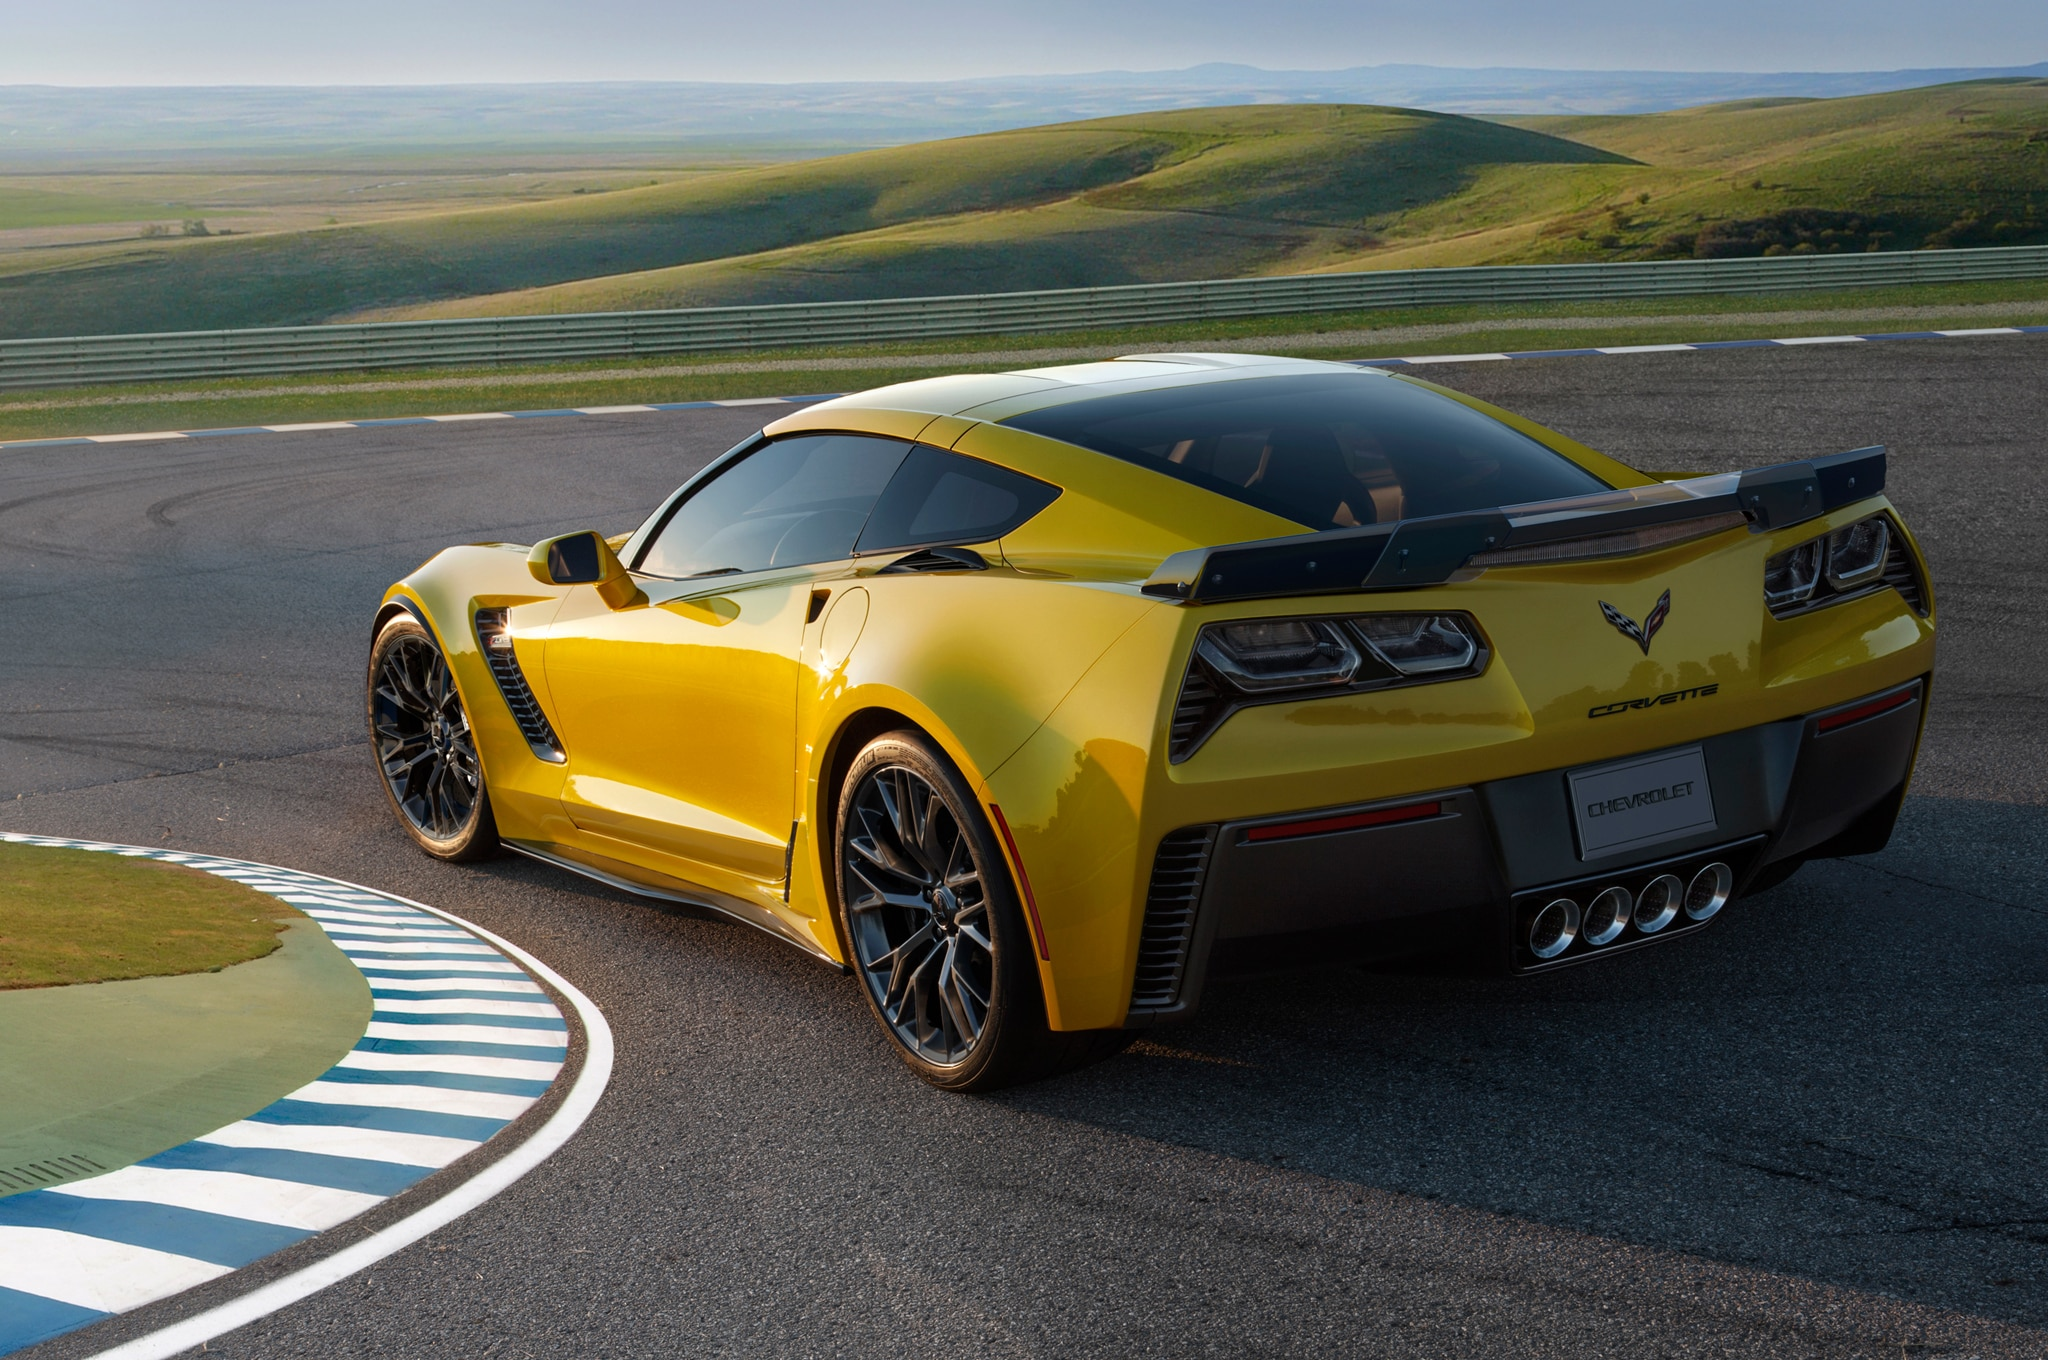 2015 Chevrolet Corvette Z06 Rear Three Quarter Turn